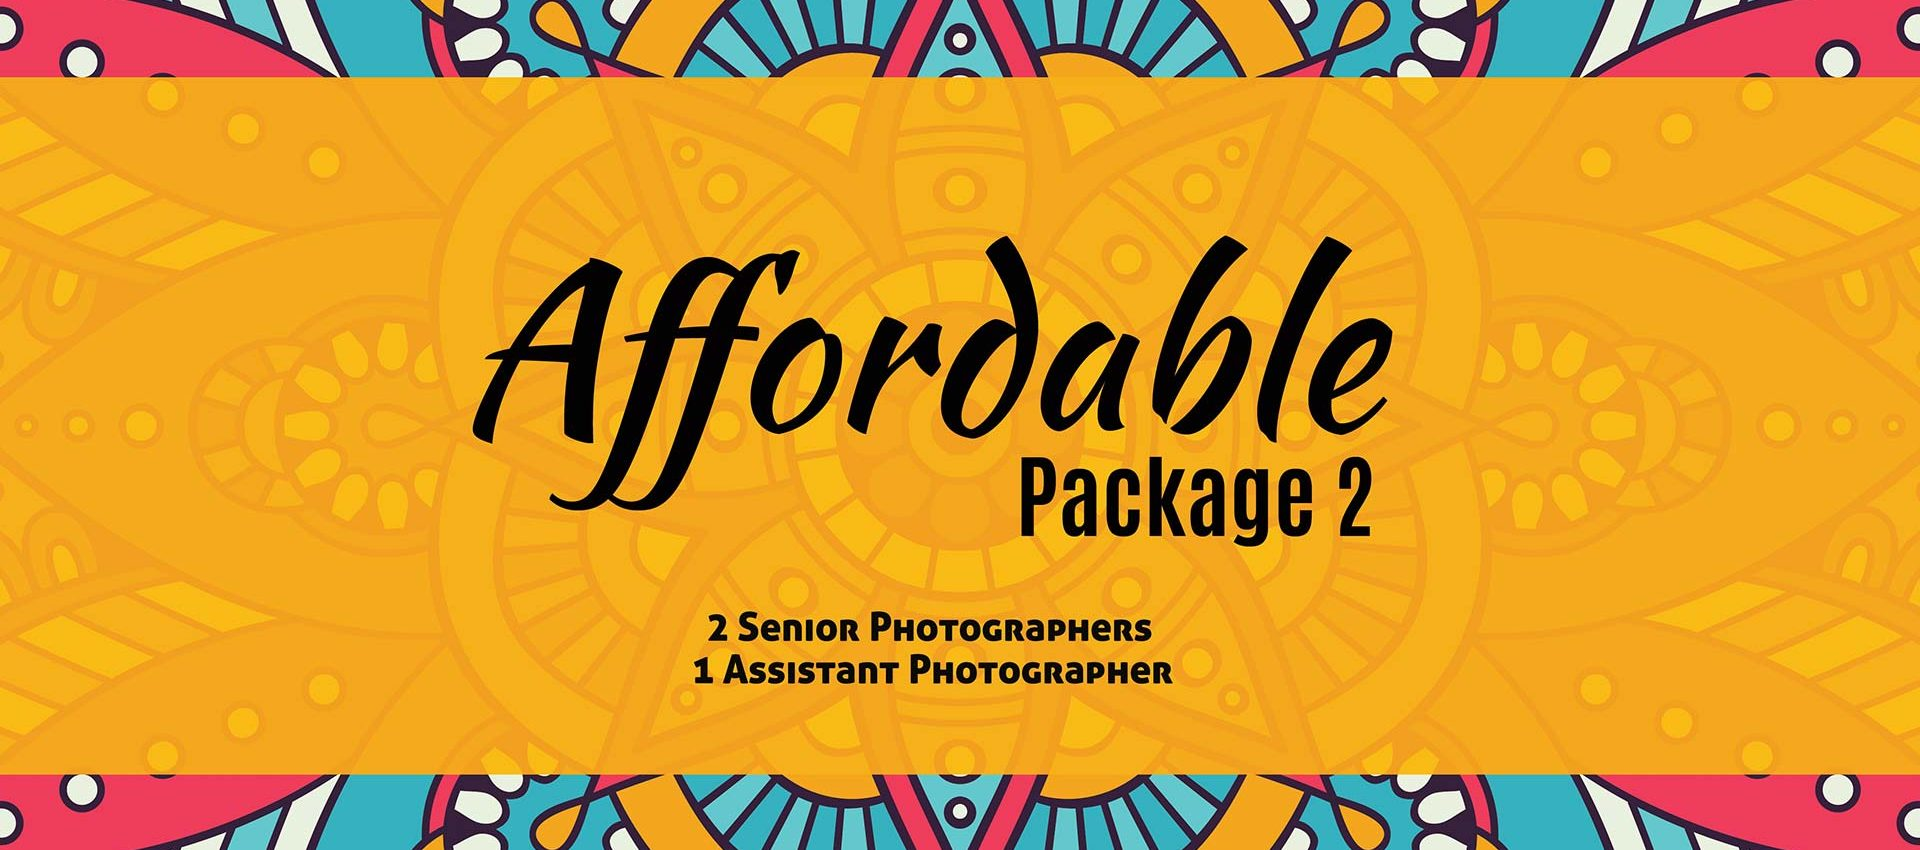 Affordable Package 2 Photo